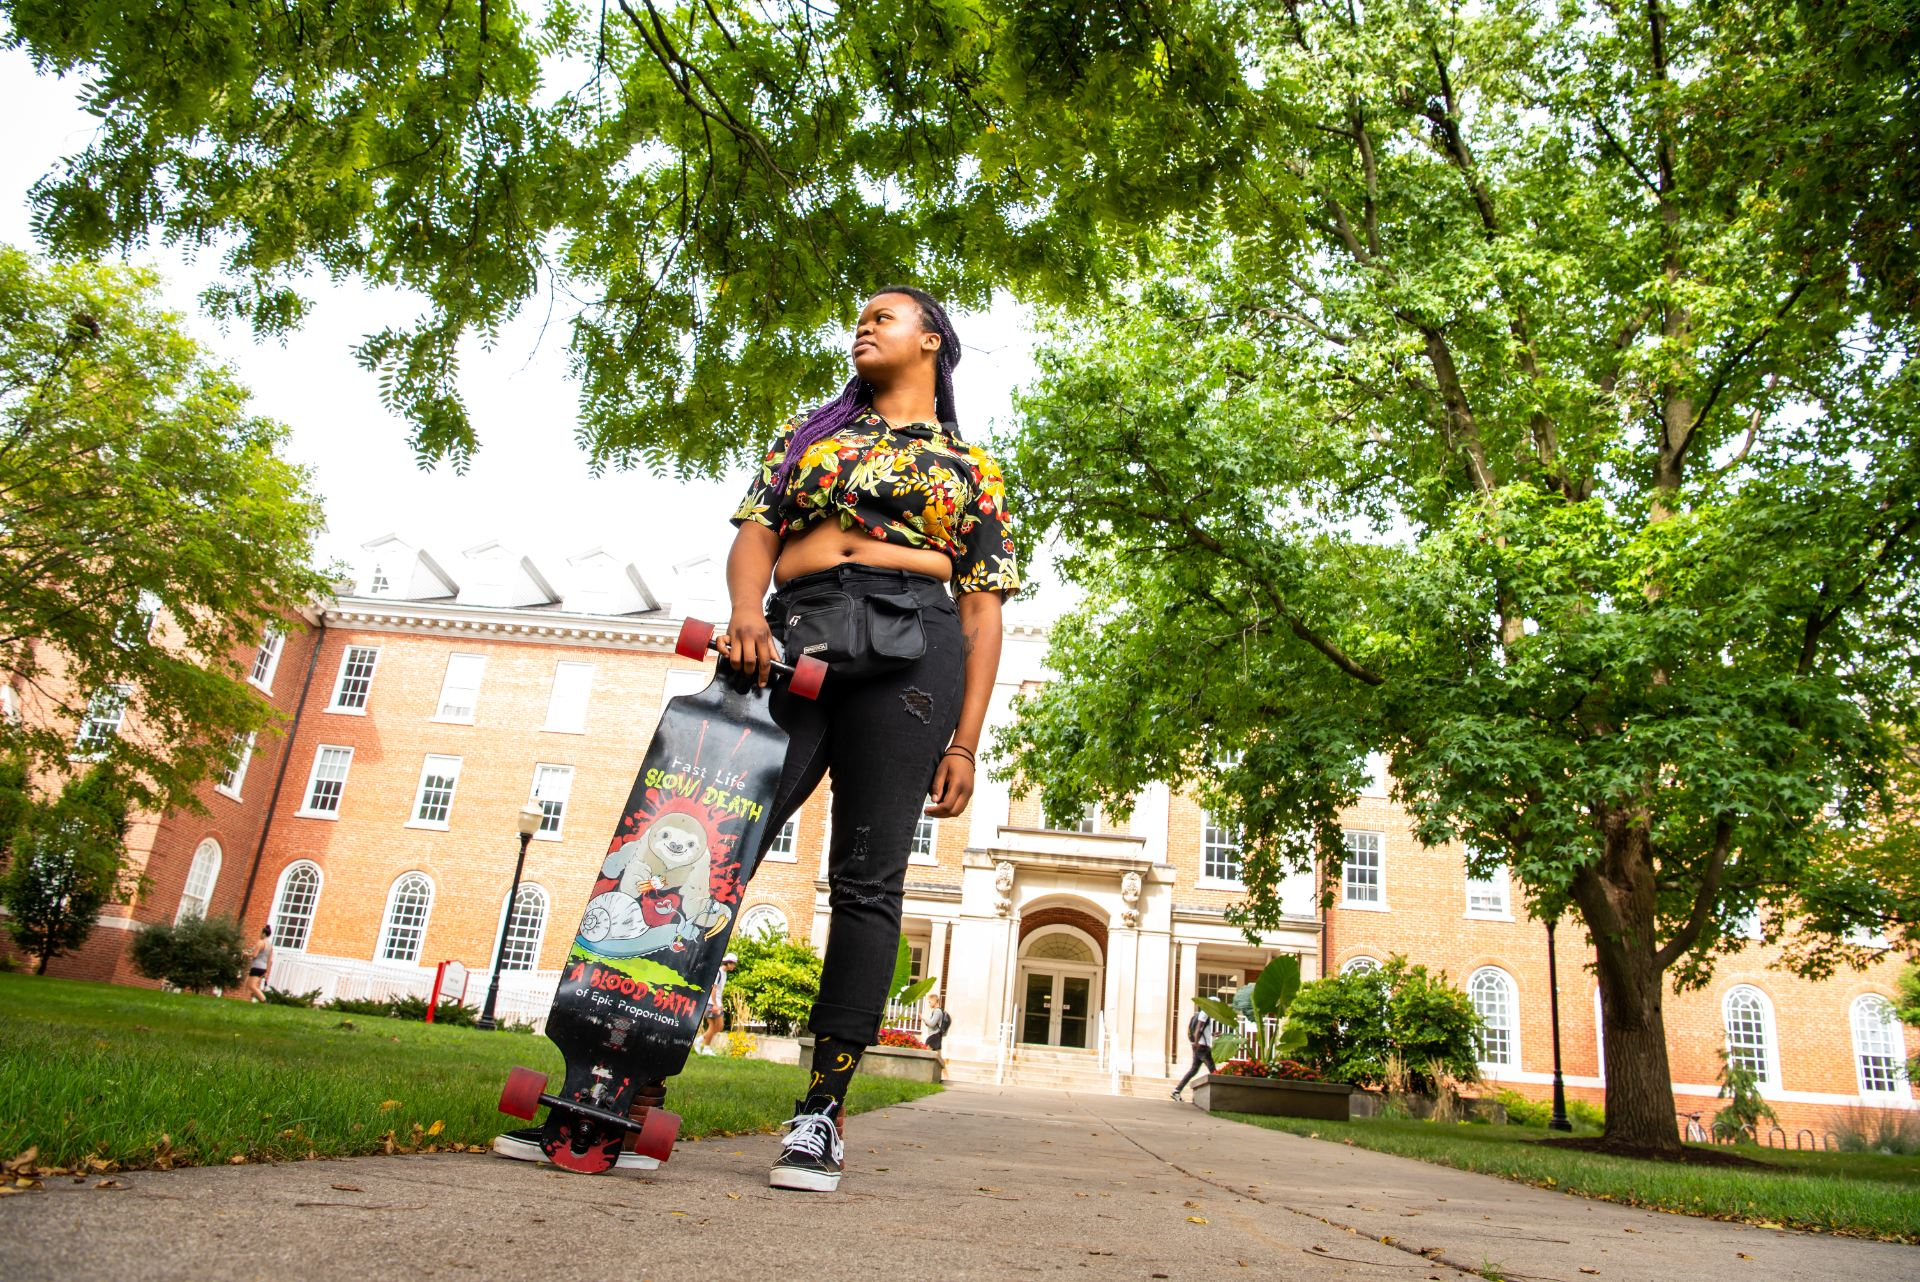 Miki McCarthy skateboards in front of Fell Hall on her way to class.